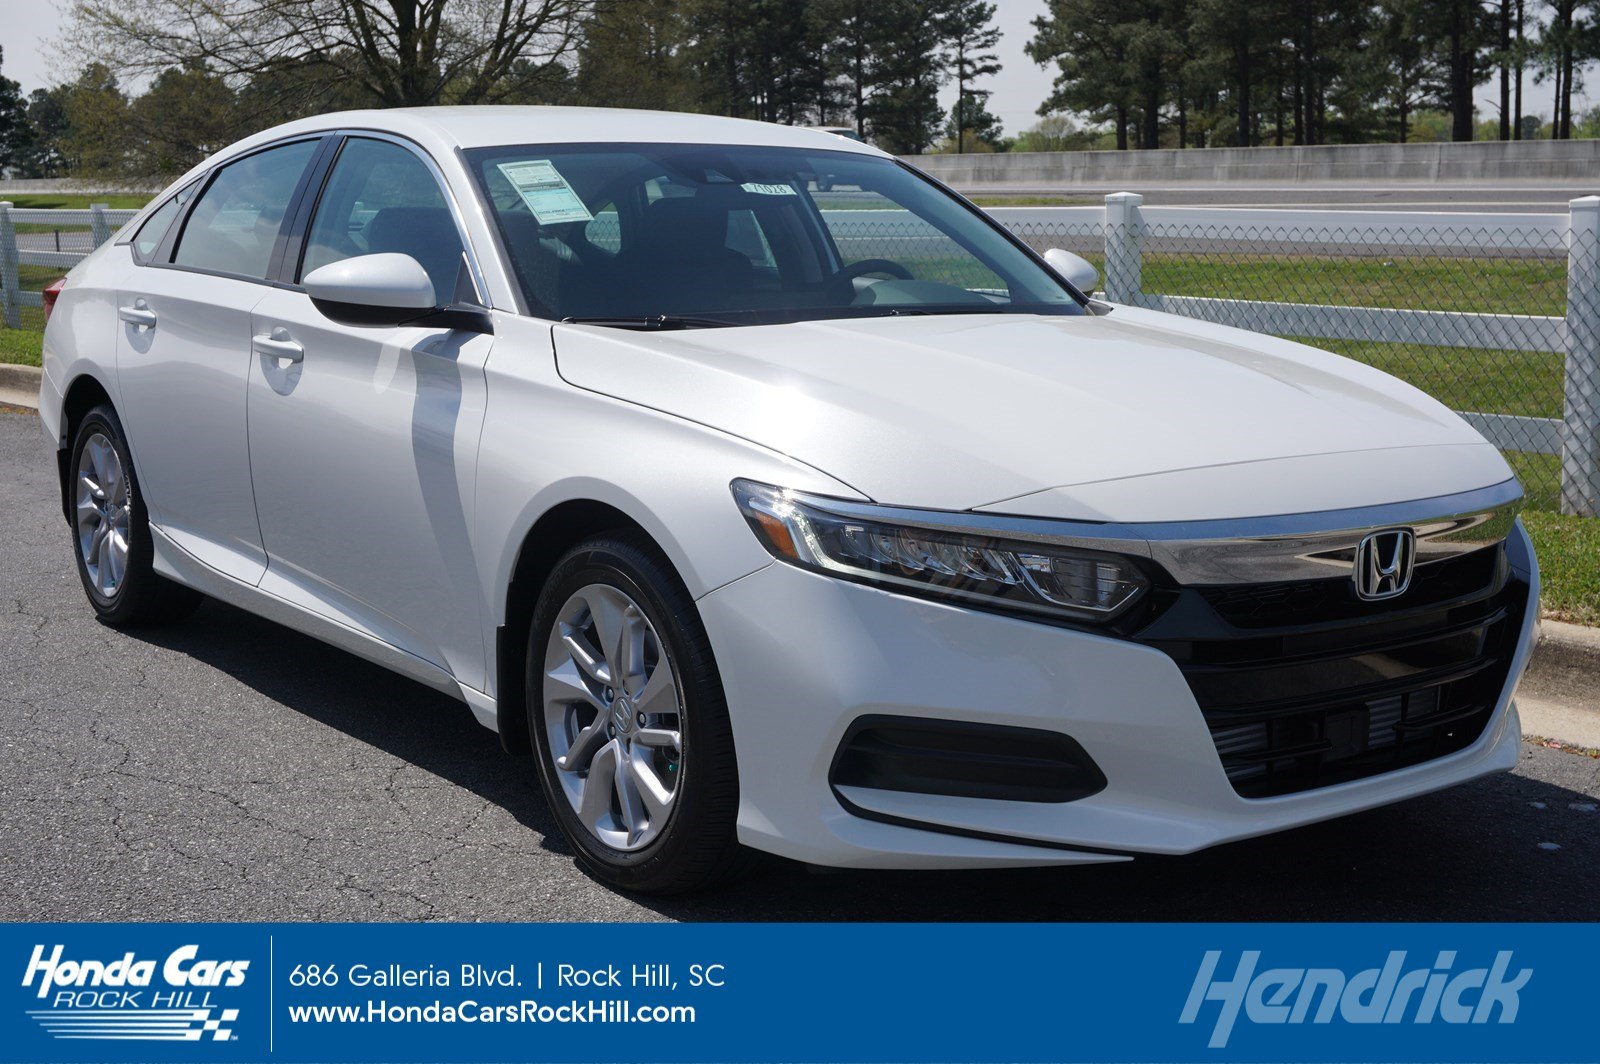 2018 Honda Accord LX 1.5T CVT Sedan